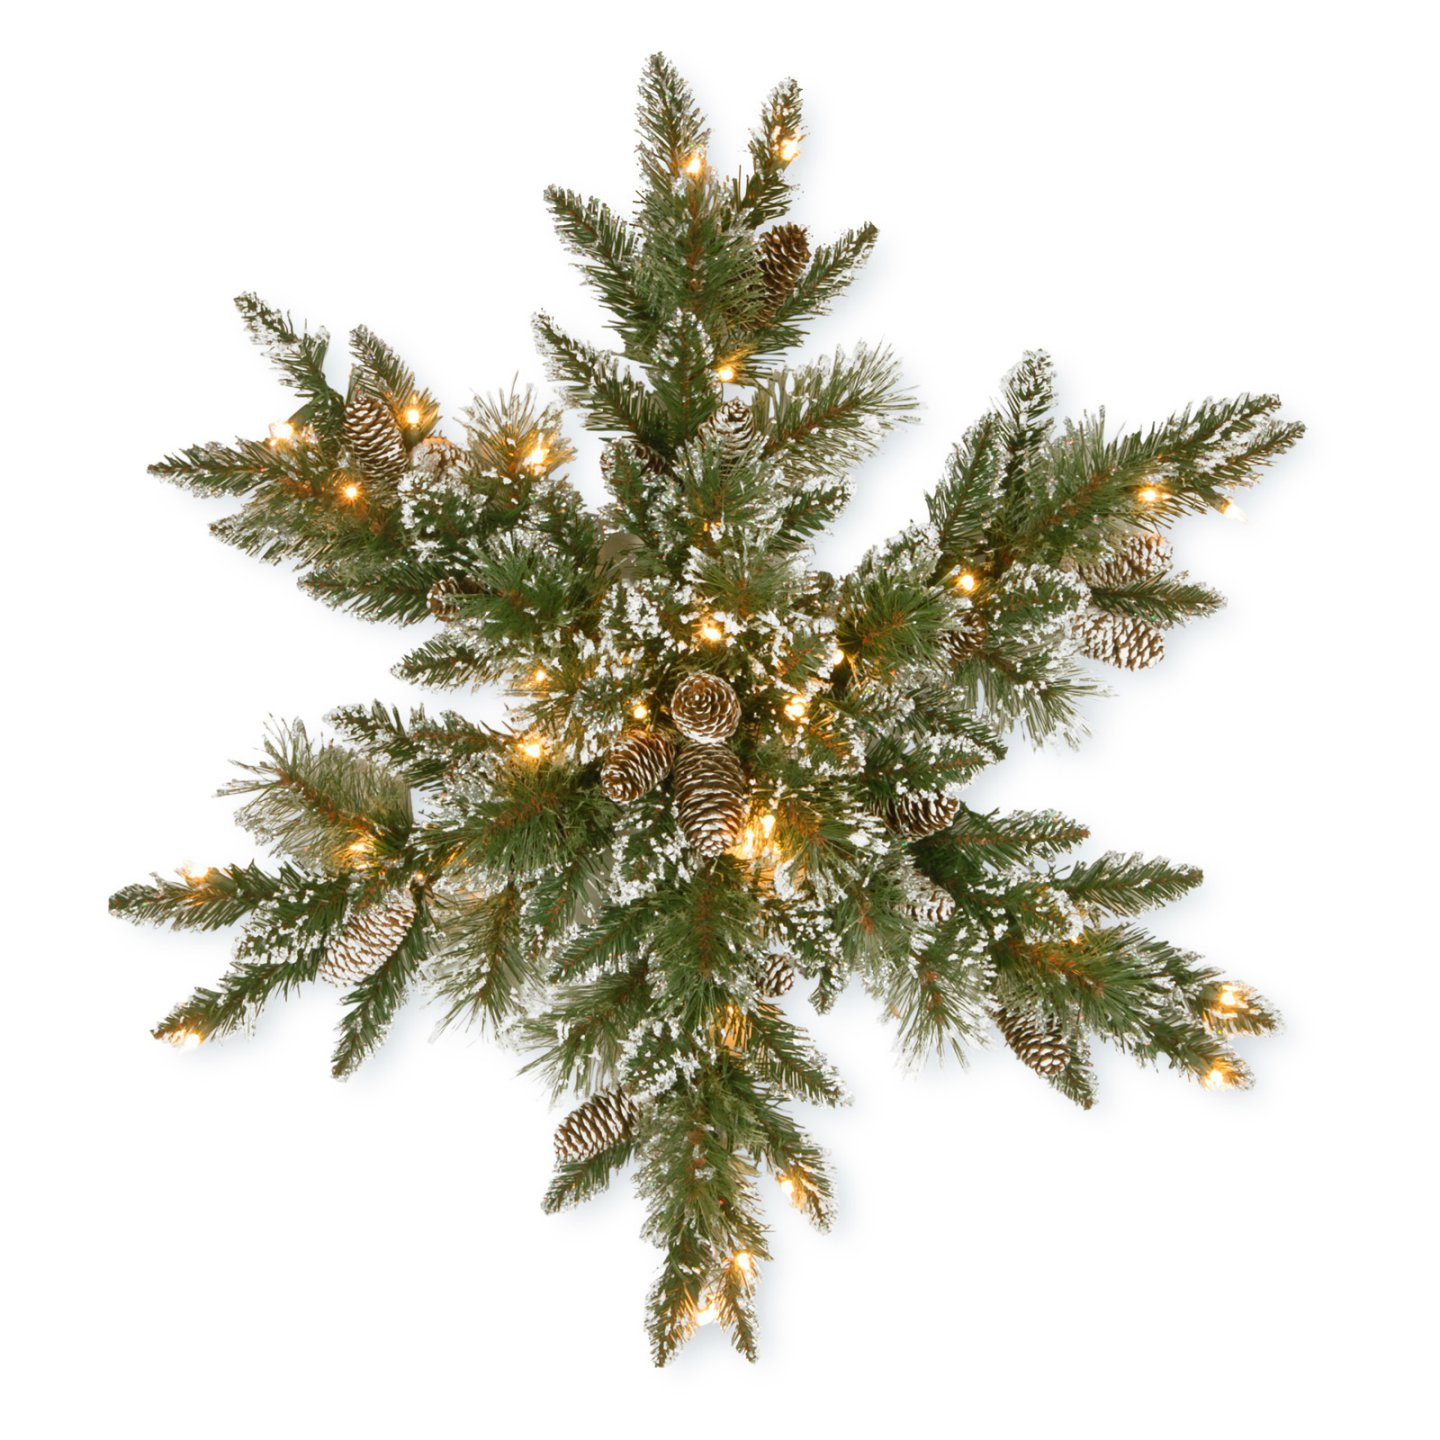 9 Christmas Front Door Decorations to Greet Your Holiday Guests Glittery Bristle Pine Snowflake With Lights #Christmas #ChristmasDecor #ChristmasSnowflake #ChristmasGatherings #FamilyGatherings #FrontDoorDecor #PorchDecor